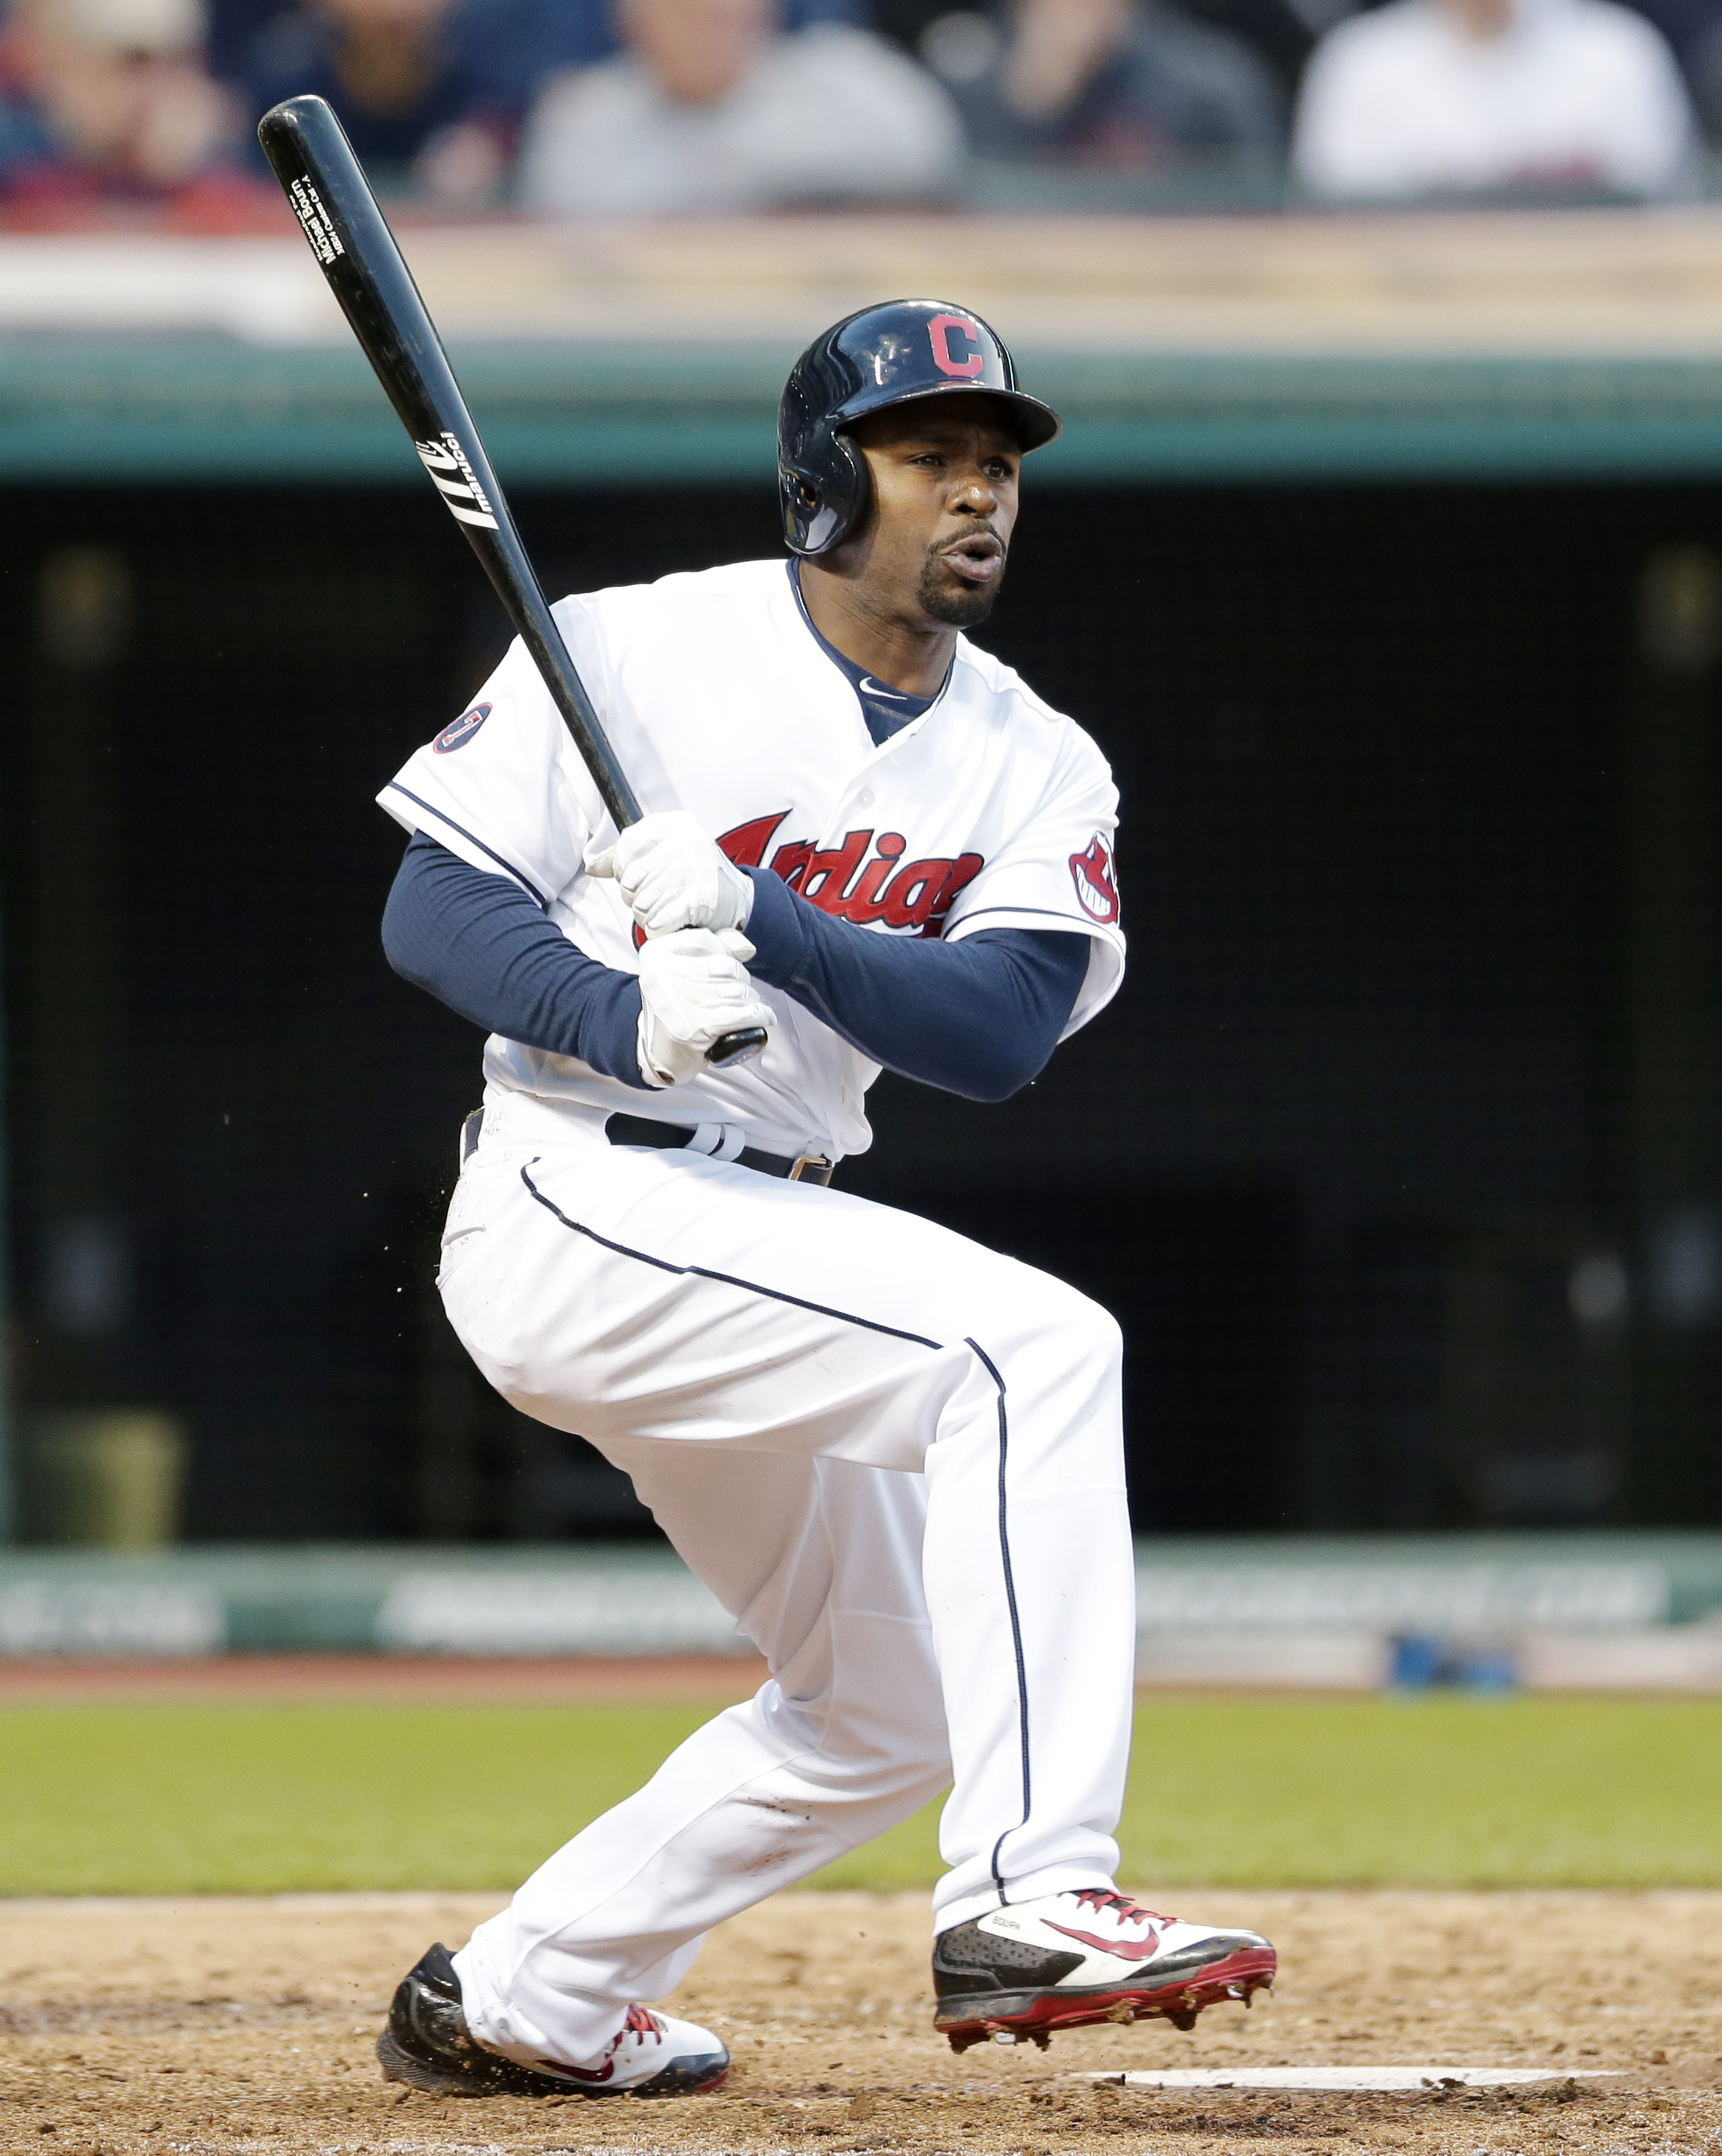 Cleveland Indians' Michael Bourn hits an RBI-double off Kansas City Royals relief pitcher Franklin Morales in the sixth inning of a baseball game, Wednesday, April 29, 2015, in Cleveland. Roberto Perez scored on the play. (AP Photo/Tony Dejak)